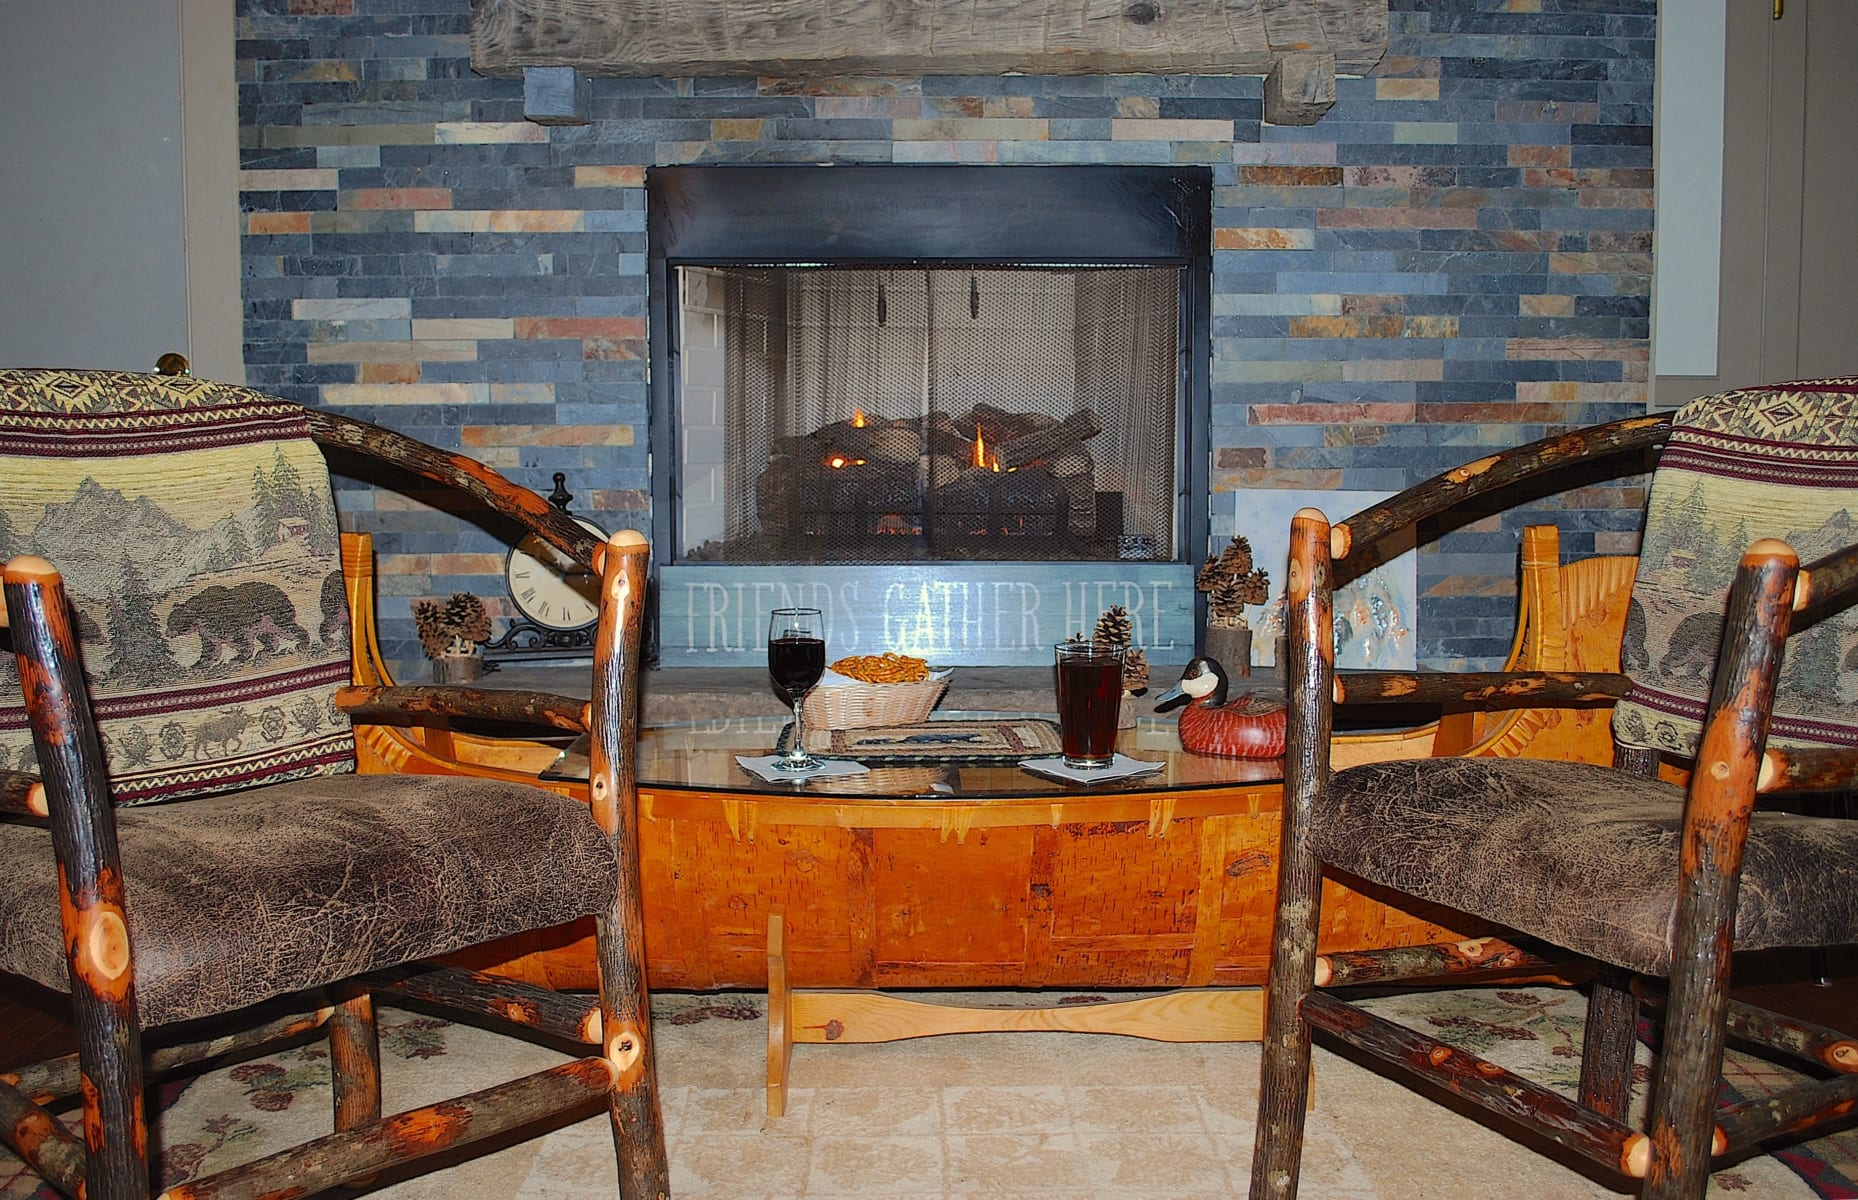 Log chairs and fireplace.